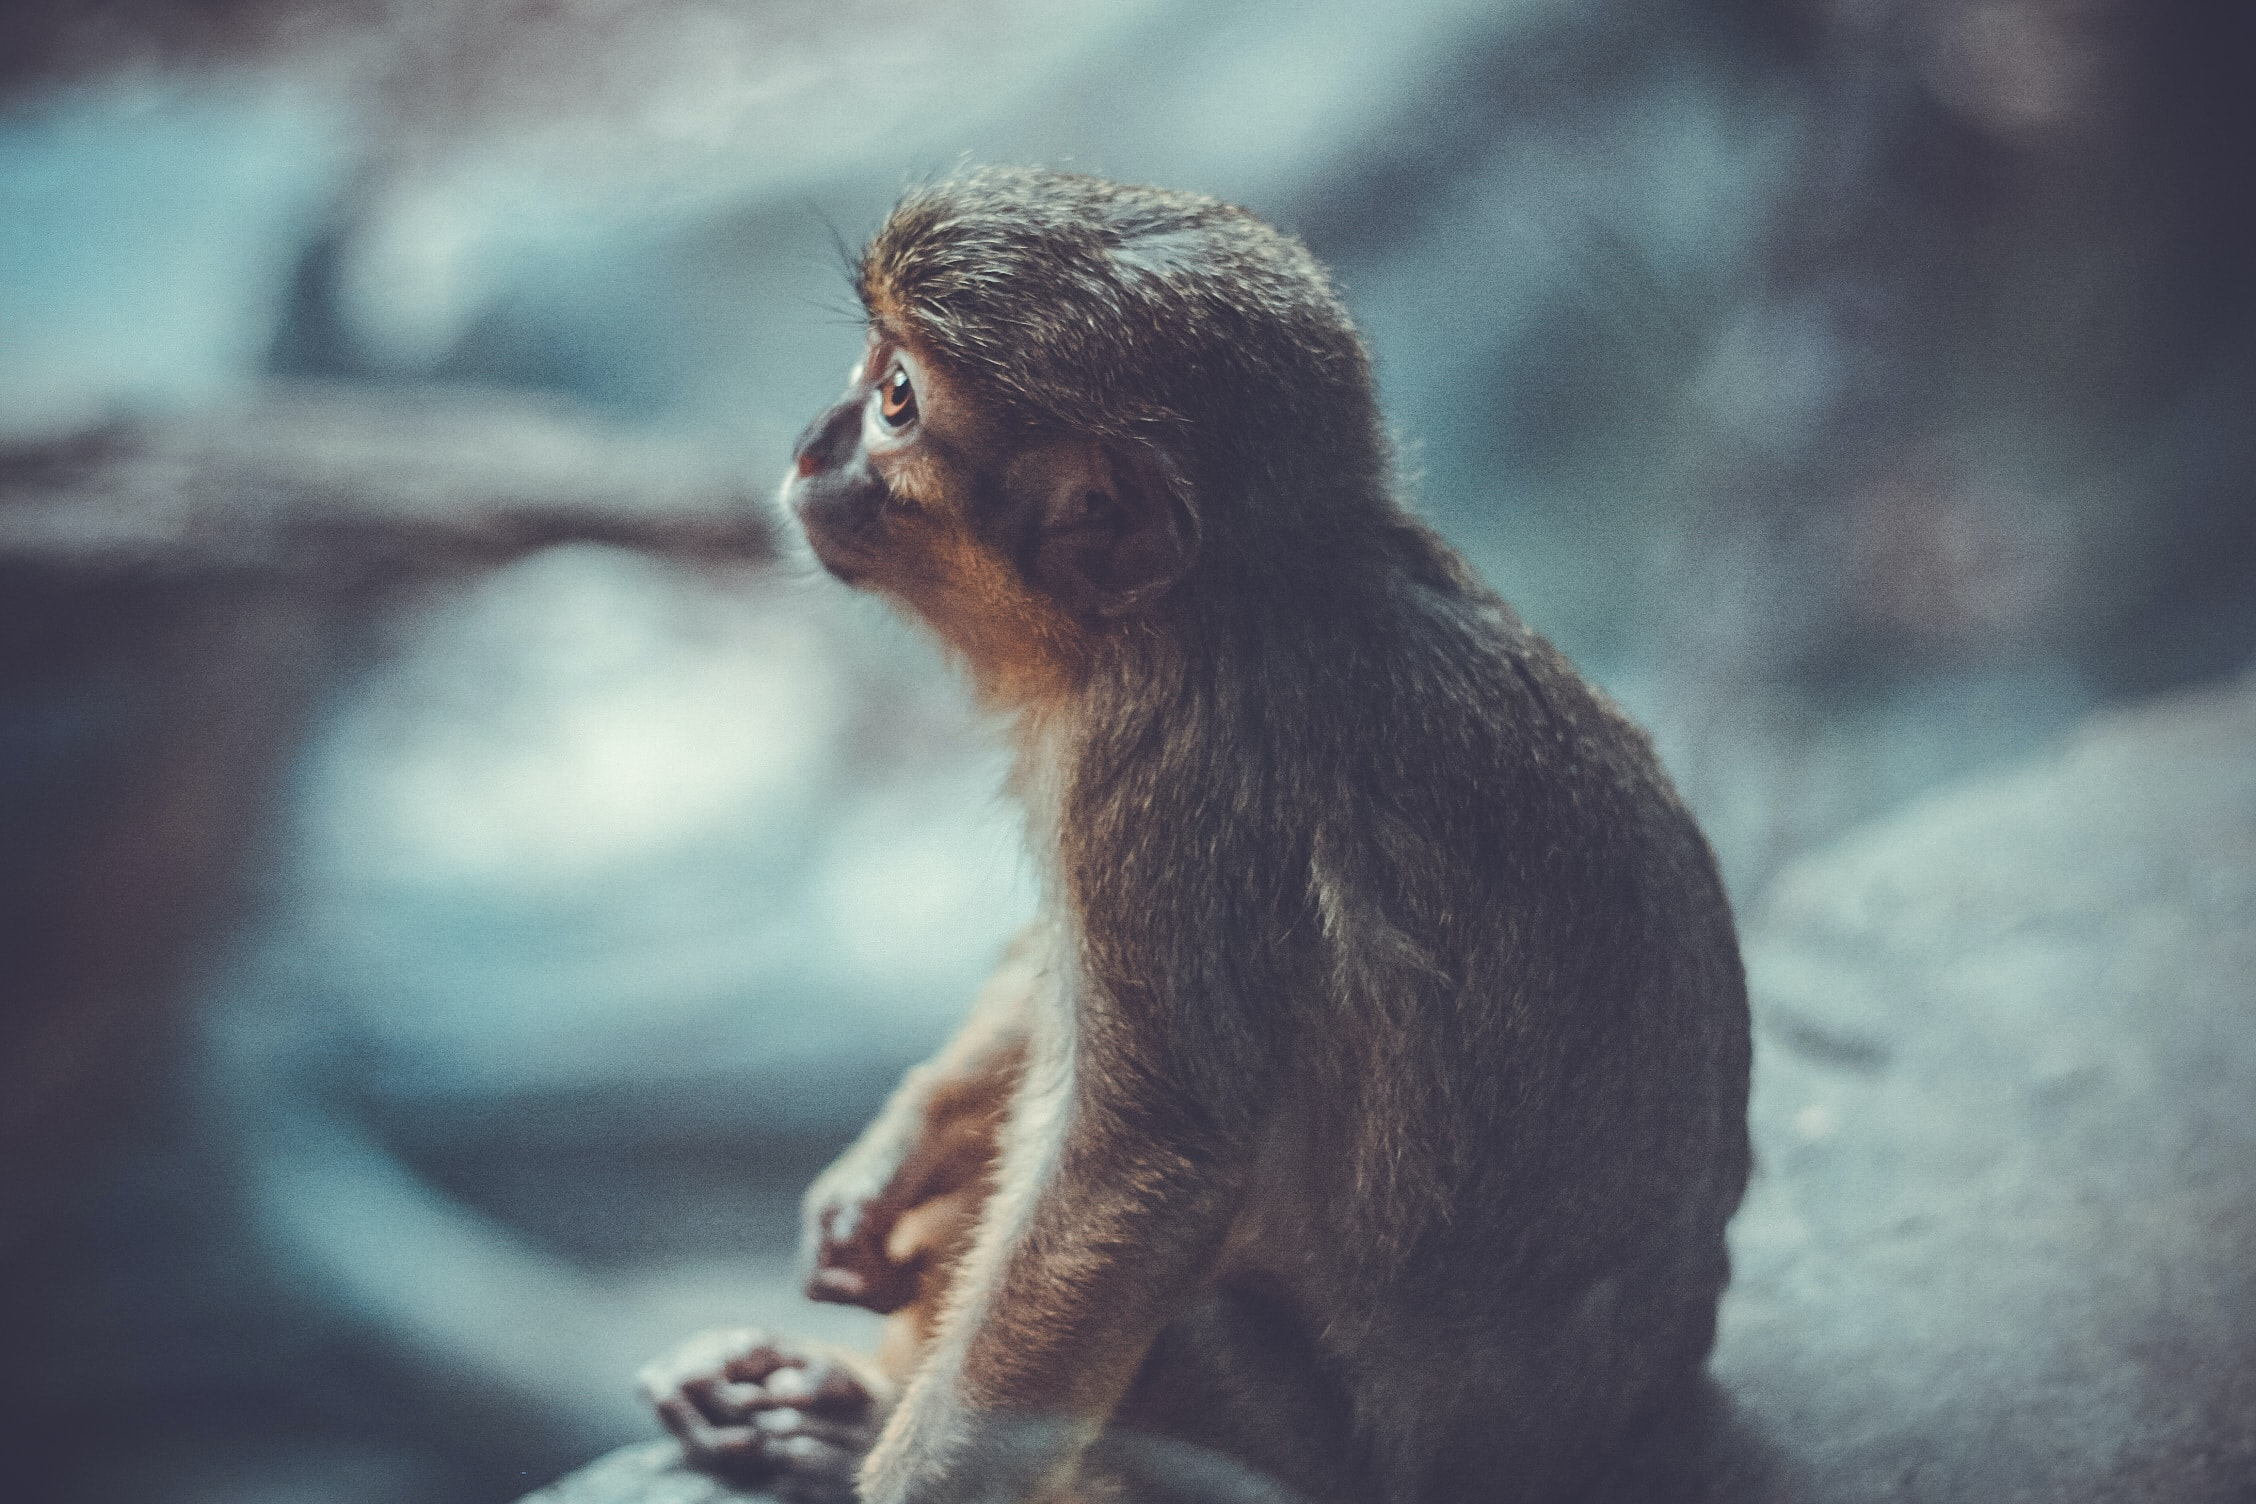 A monkey looking up while sitting on a stone